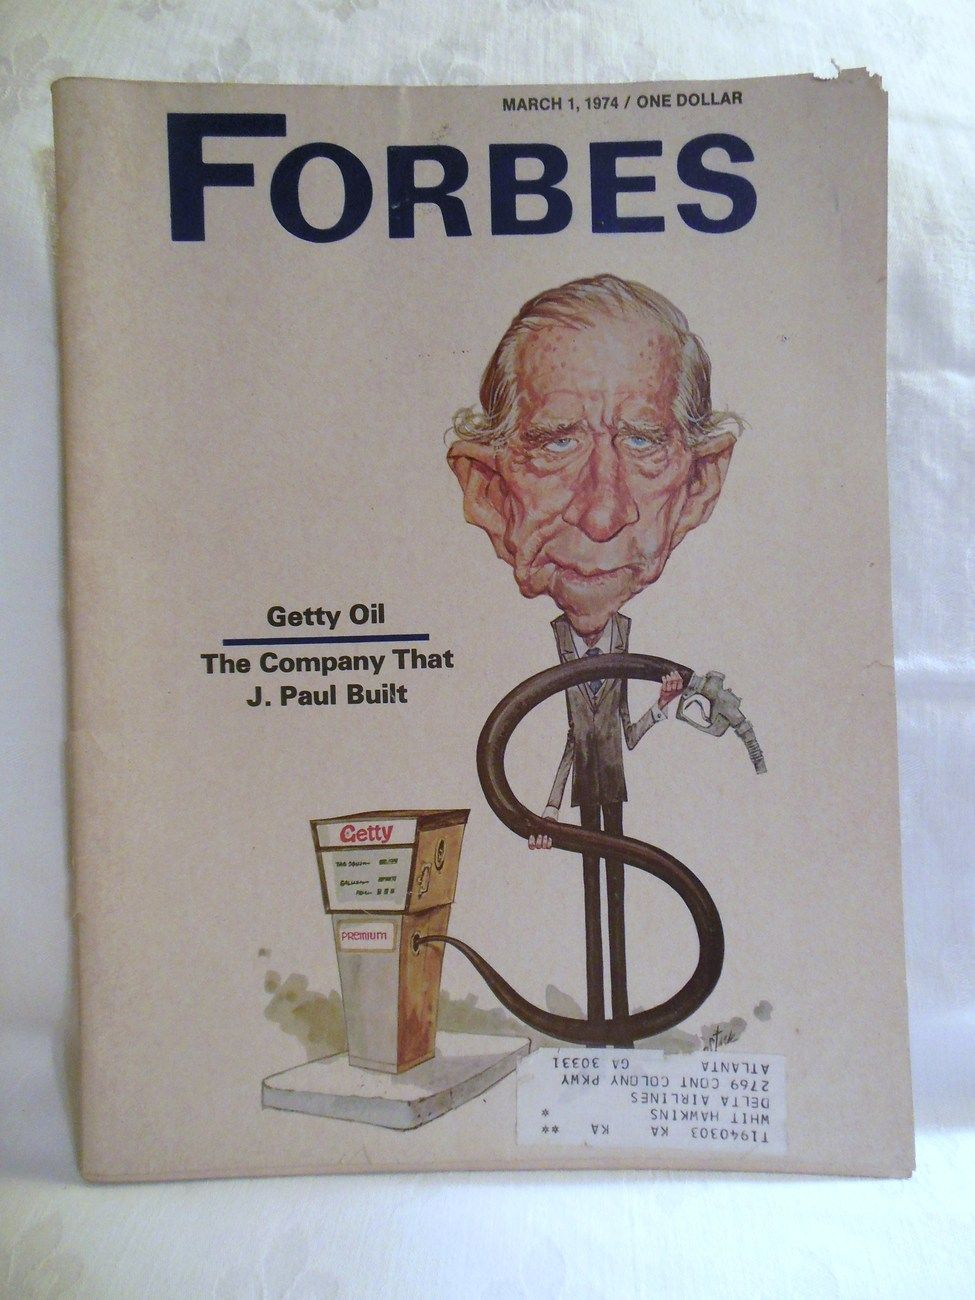 Vintage Forbes Magazine with J. Paul Getty Oil Company - March 1974 ...